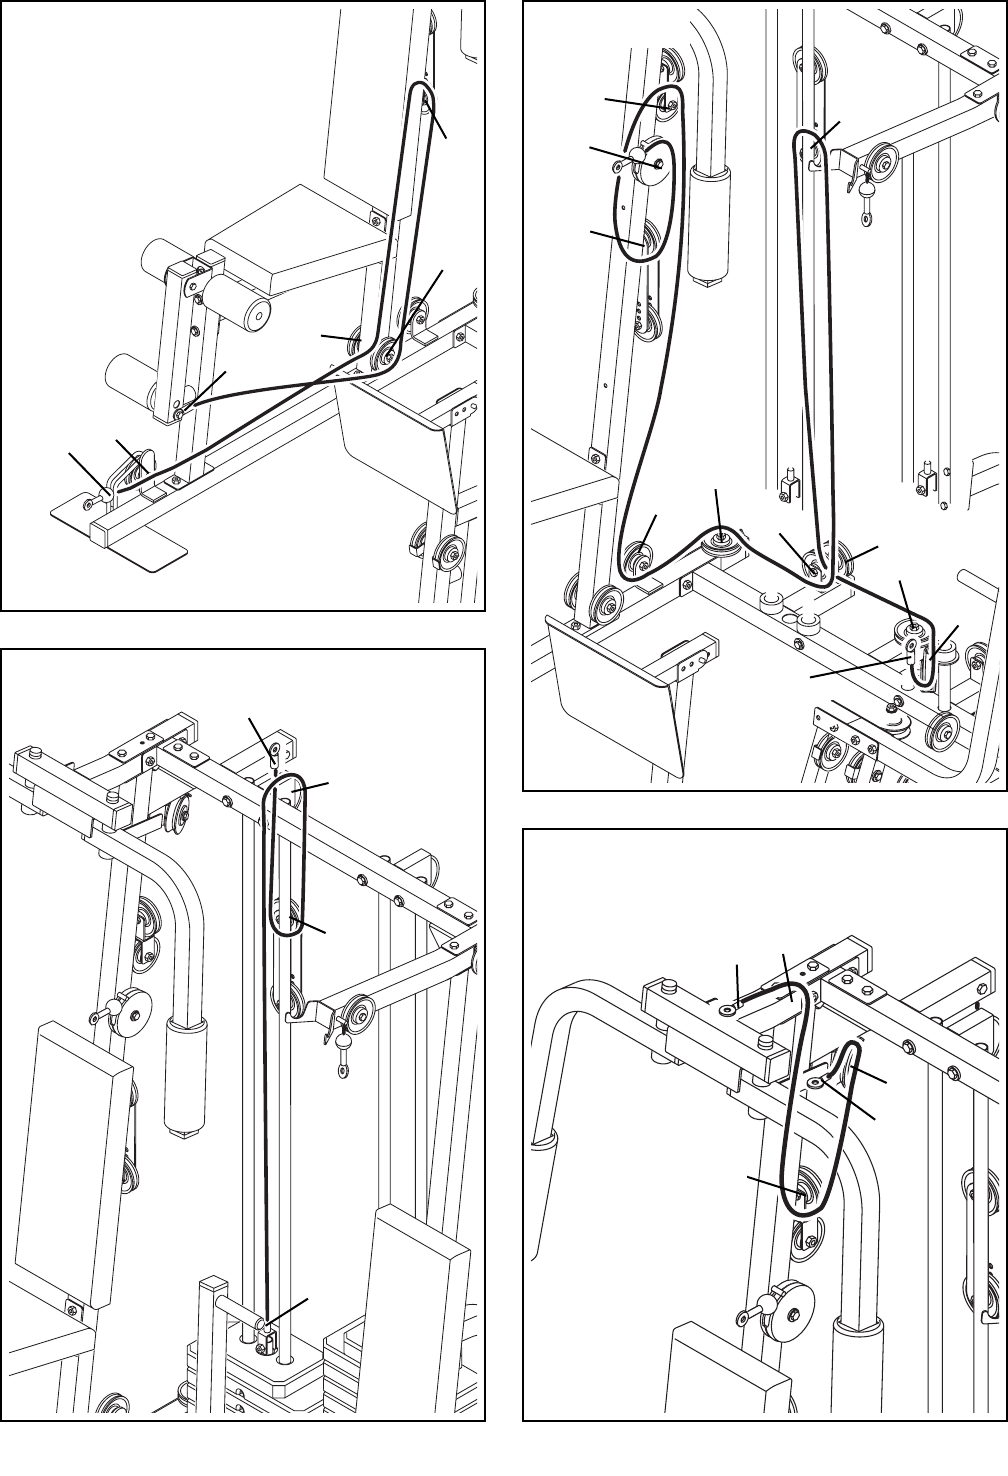 Page 31 of Weider Home Gym 831.159830 User Guide